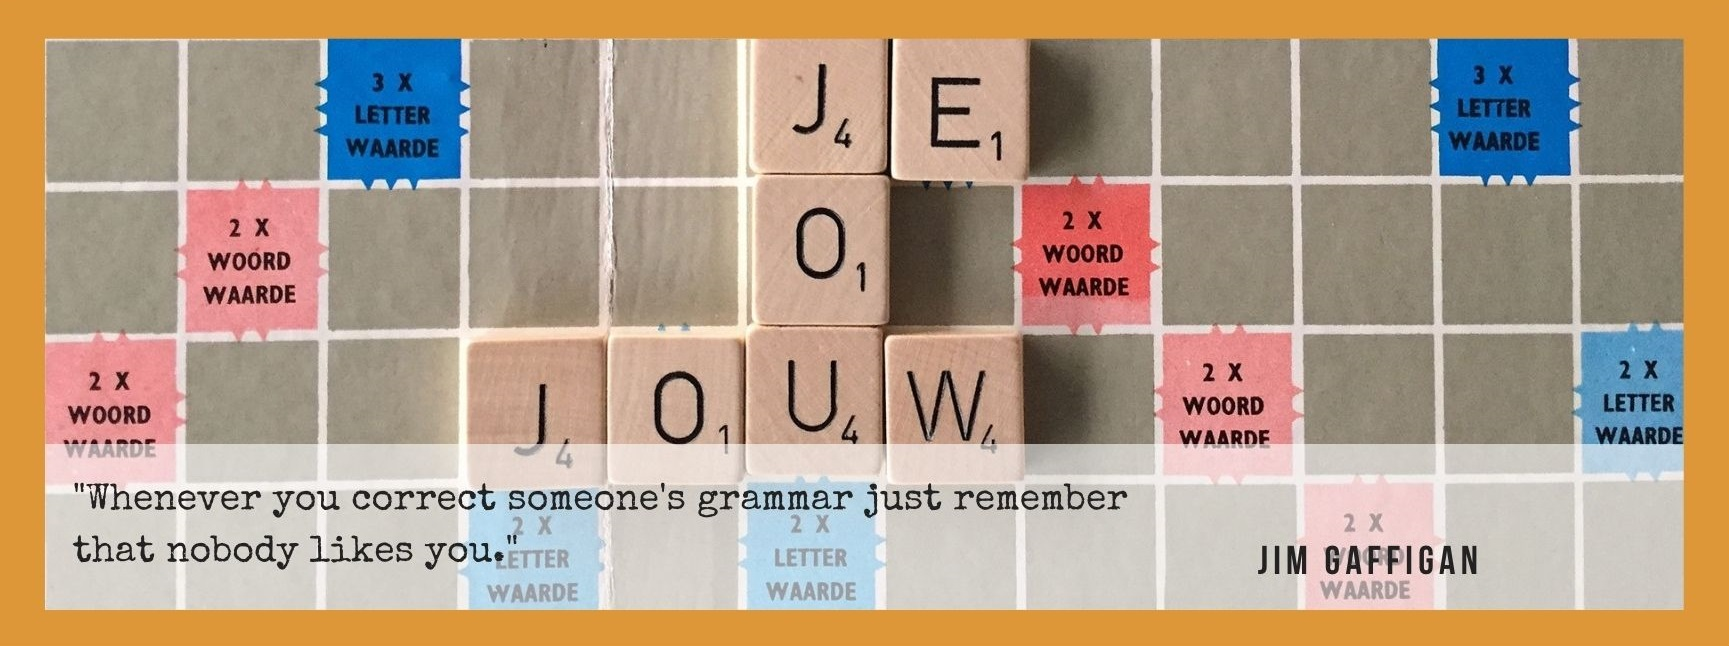 Whenever you correct someone's grammar just remember that nobody likes you. Quote van Jim Gaffigan.